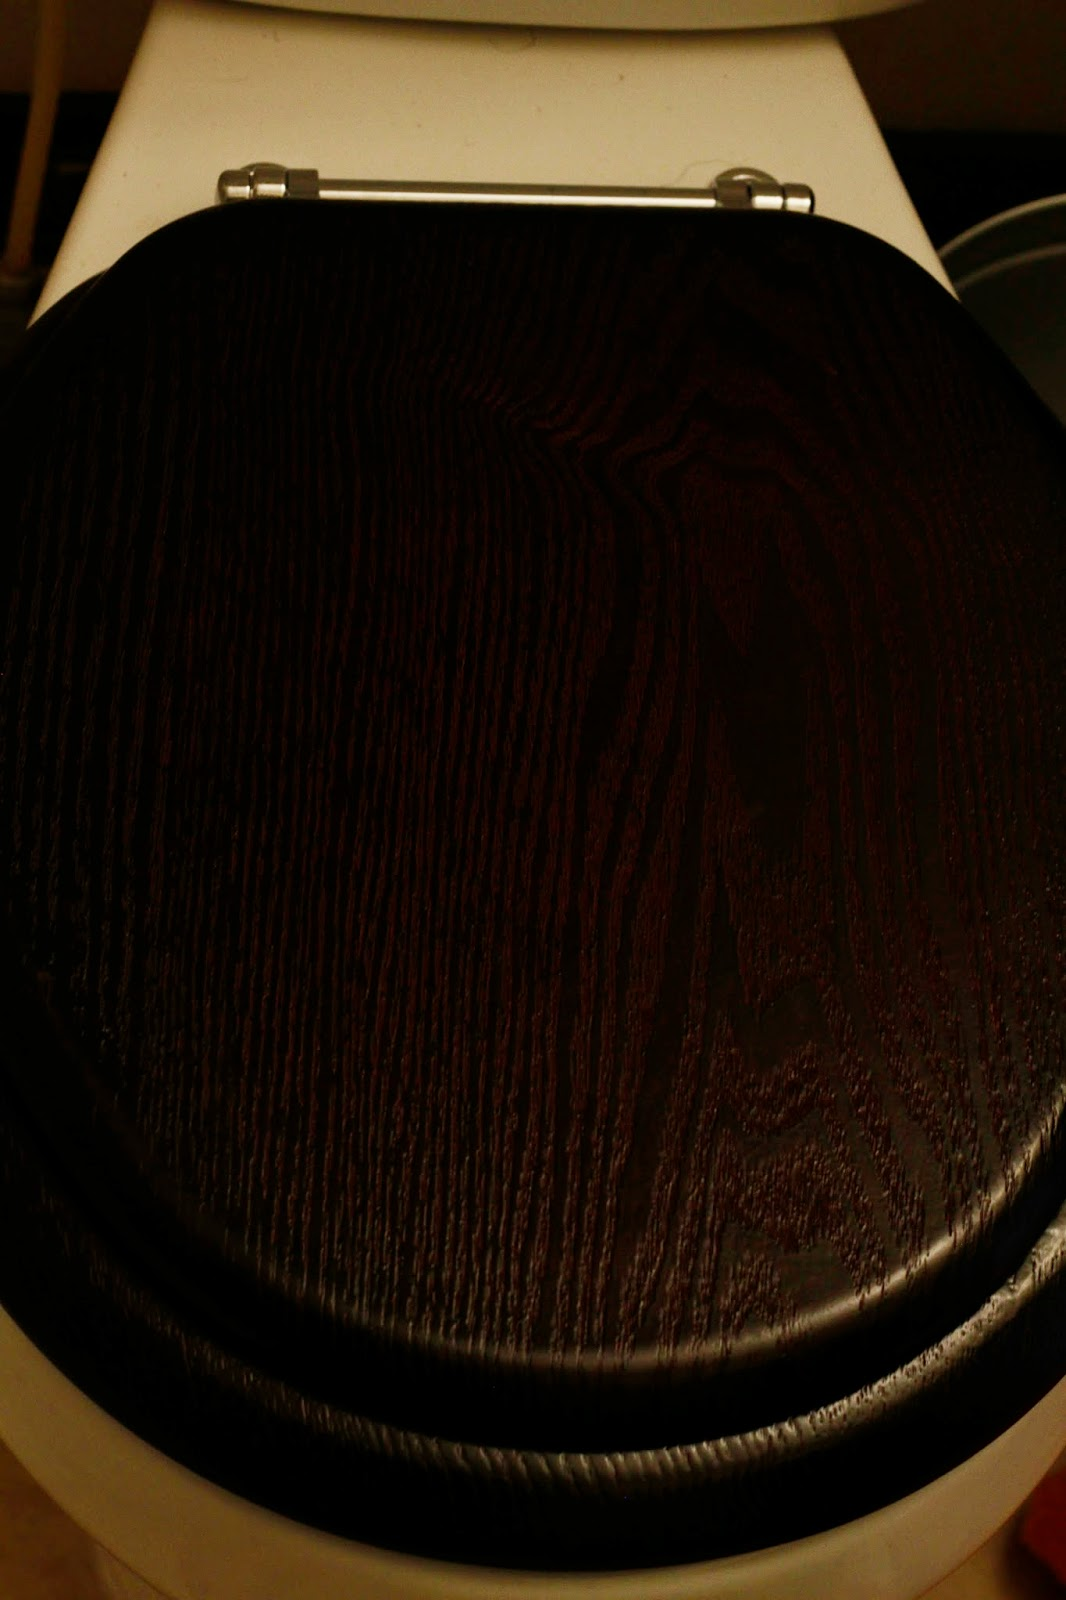 Dark Brown Toilet Seat. Gallery For Dark Cherry Wood Color Walnut Toilet Seat Cover Natural Chrome  Hinges martinkeeis me 100 Black Images Lichterloh